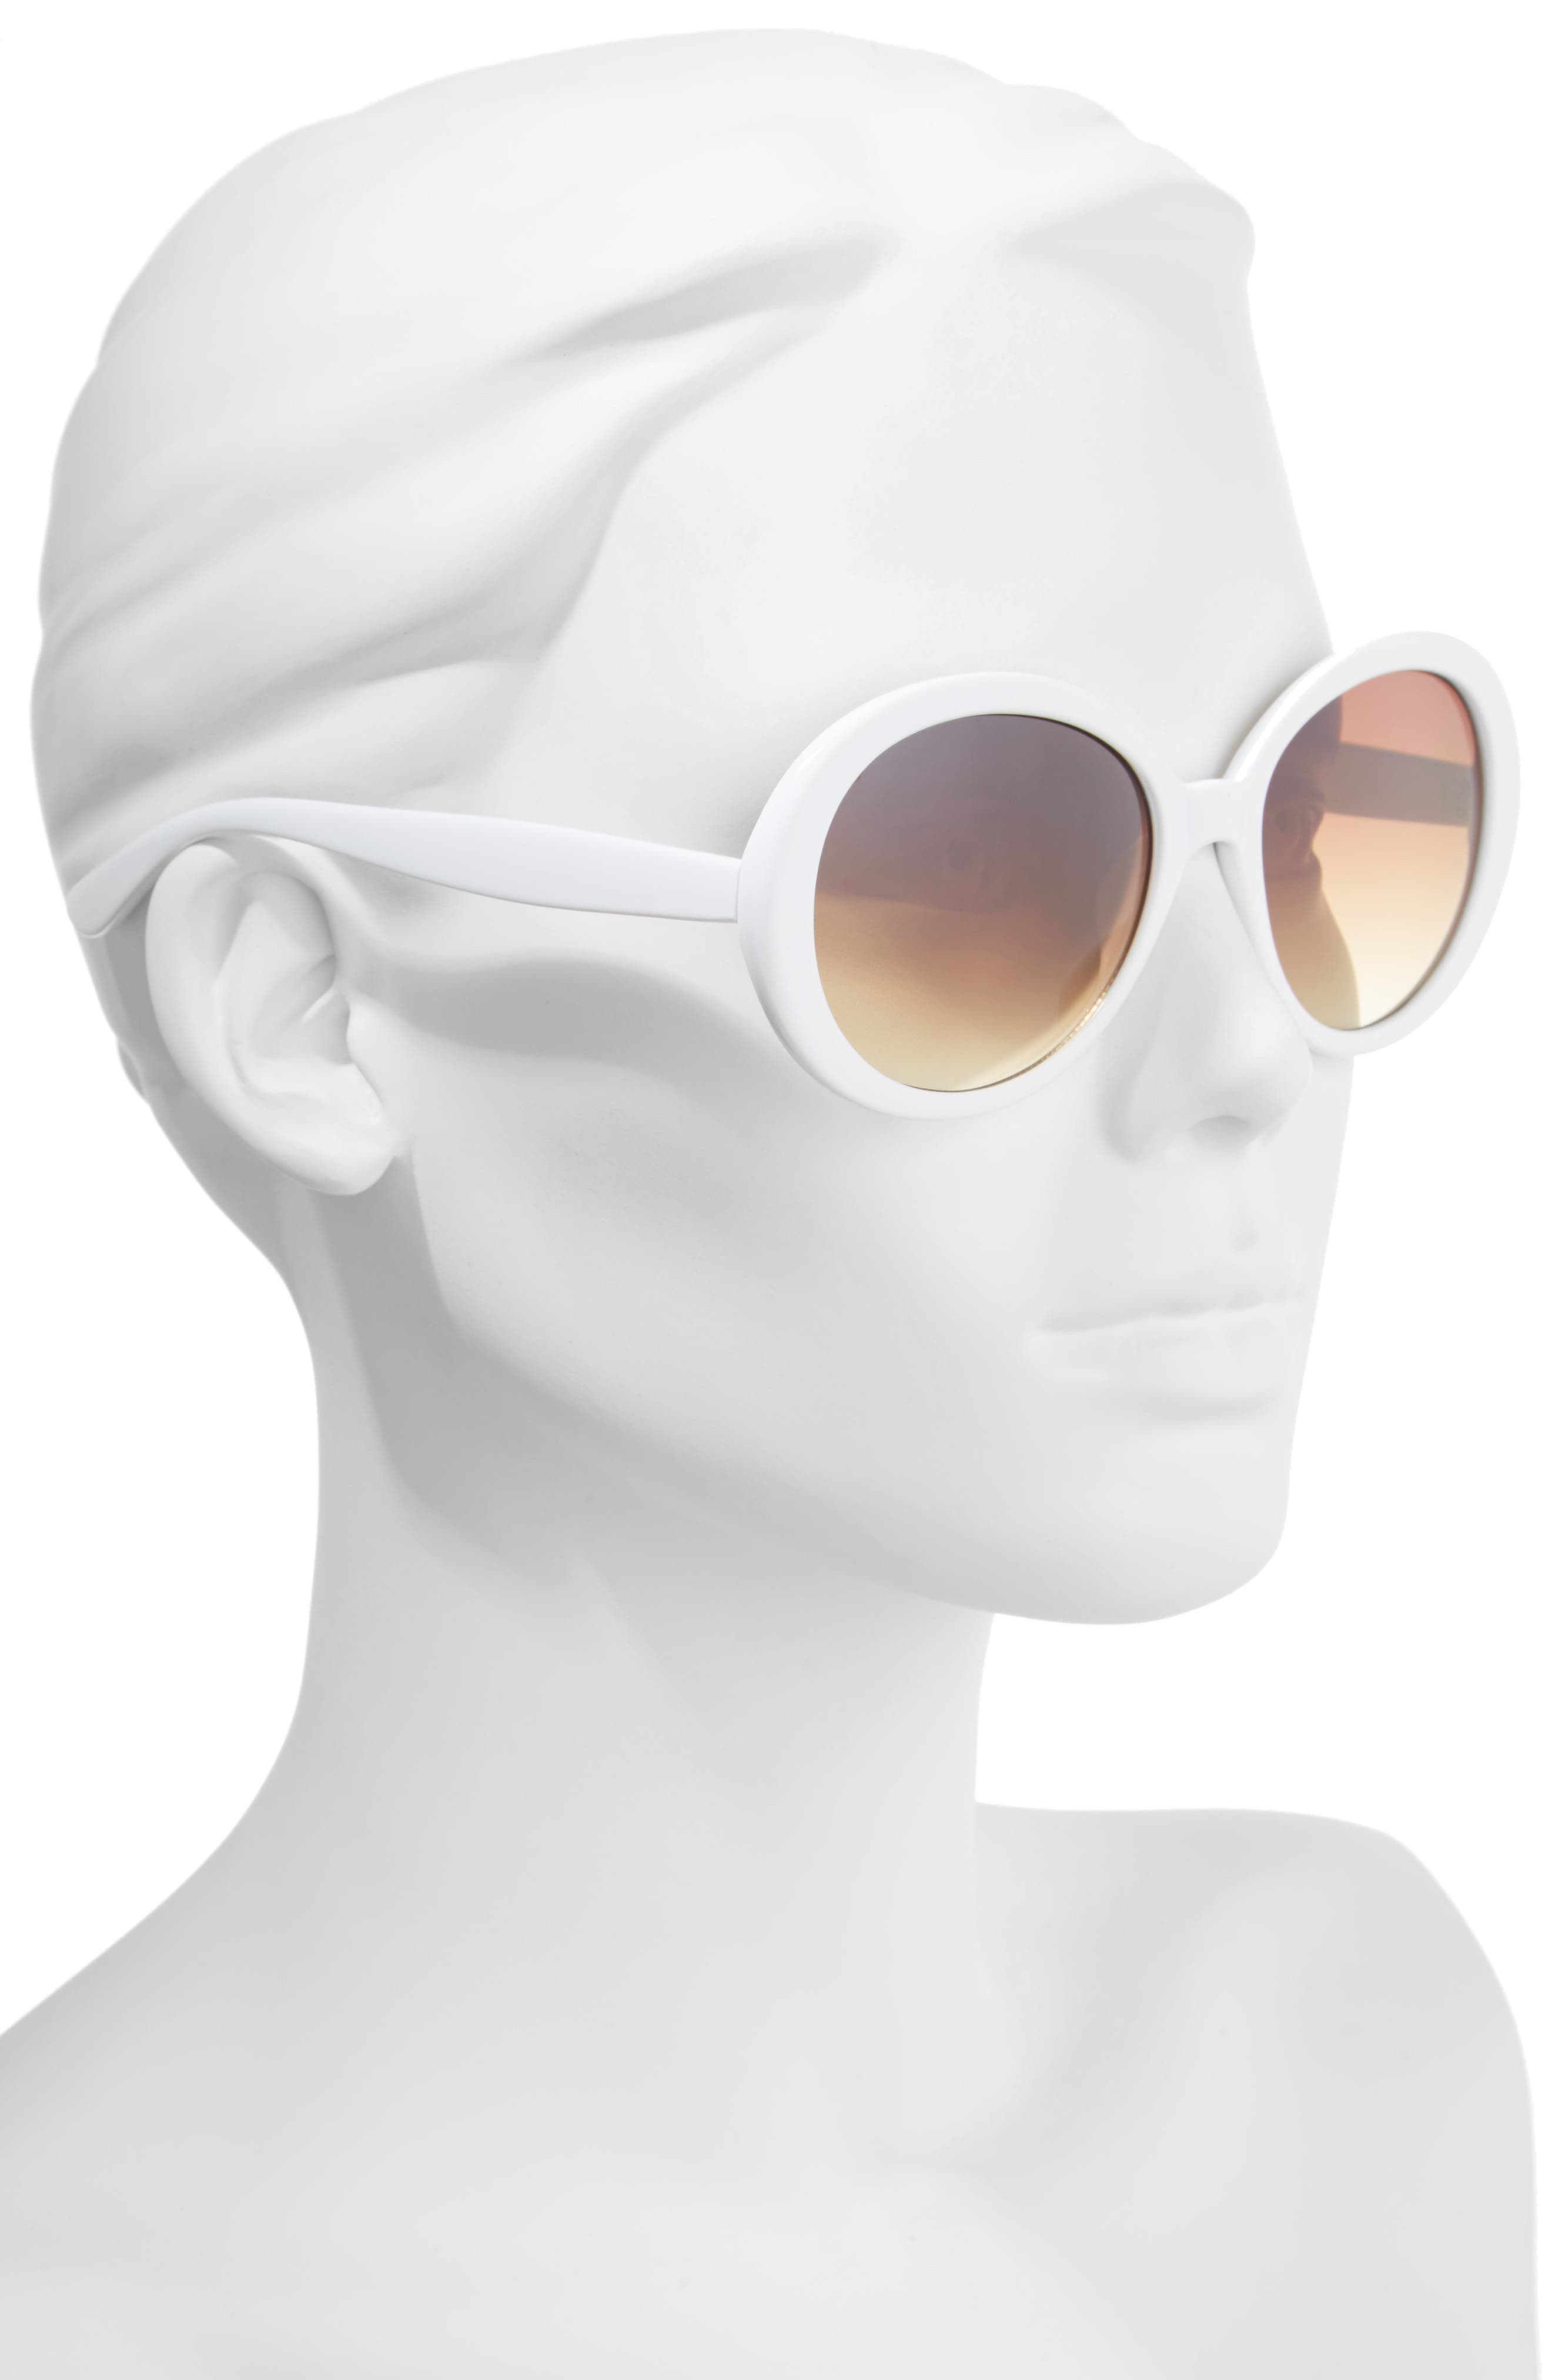 55mm Oval Sunglasses,                             Alternate thumbnail 2, color,                             100